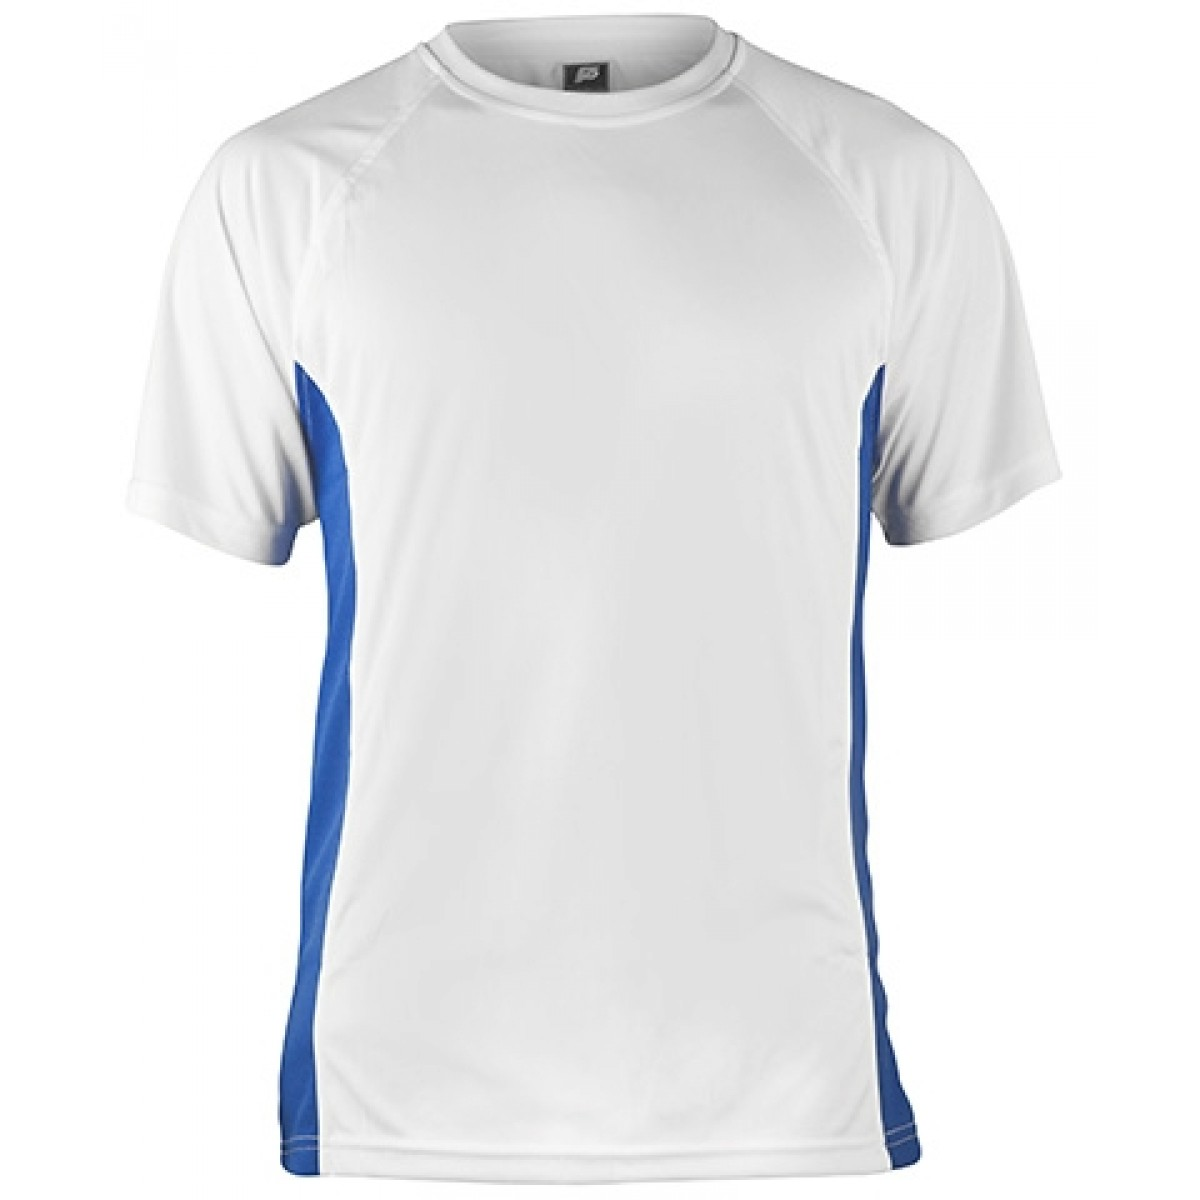 Short Sleeve White Performance With Blue Side Insert-White/Blue-XL